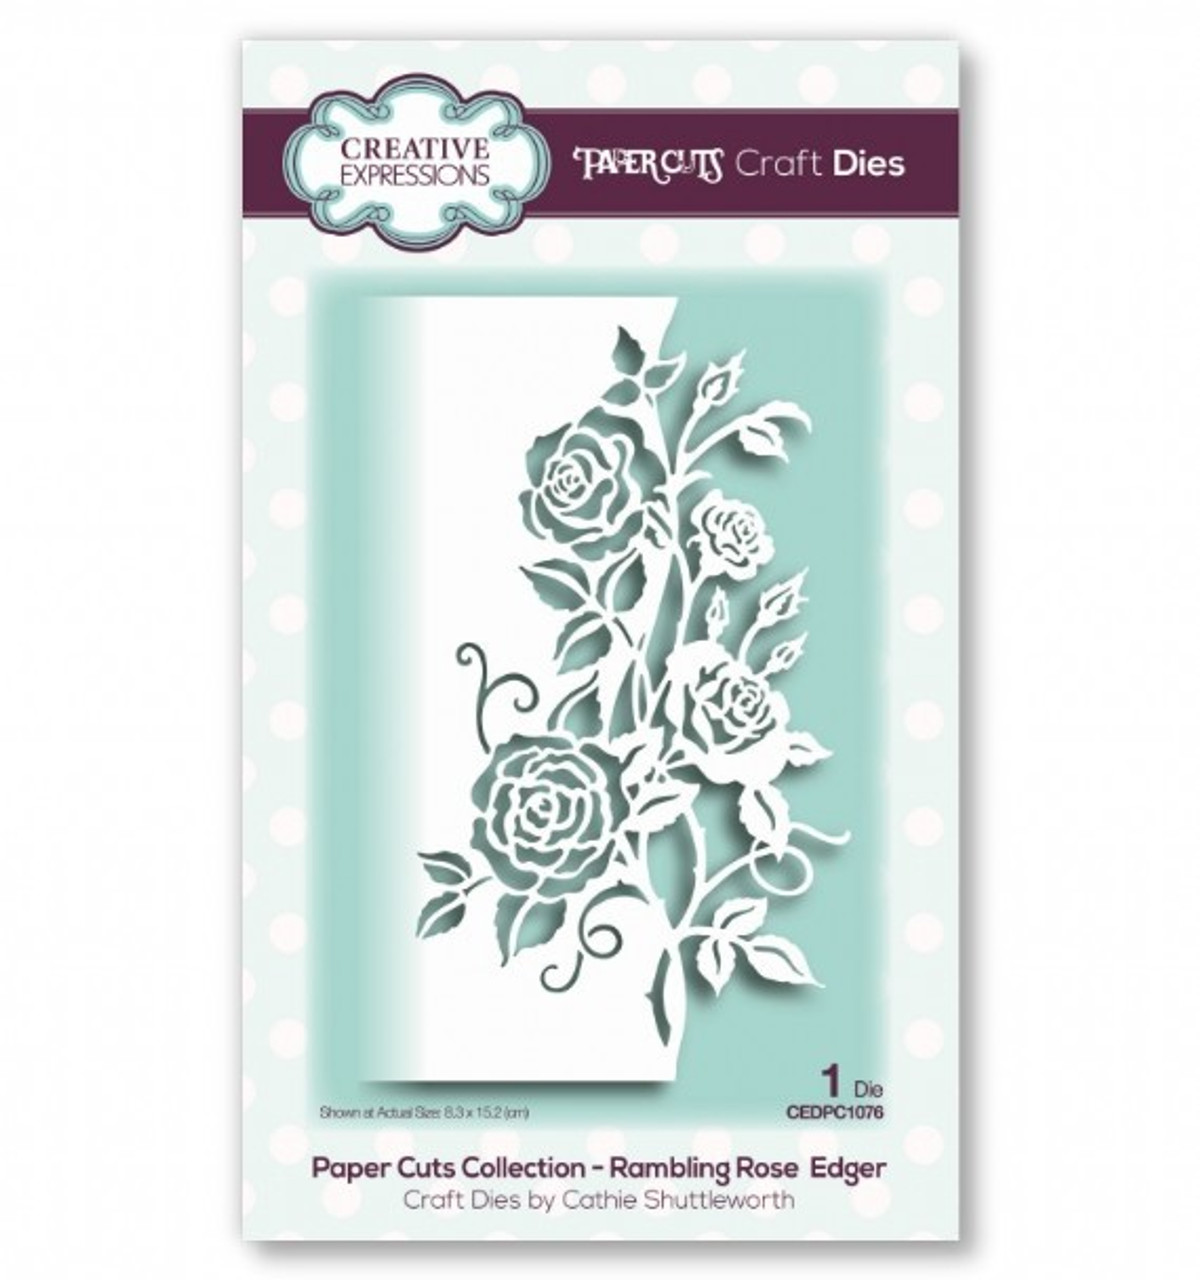 Creative Expressions Paper Cuts Collection - Rambling Rose Edger Craft Die CEDPC1076